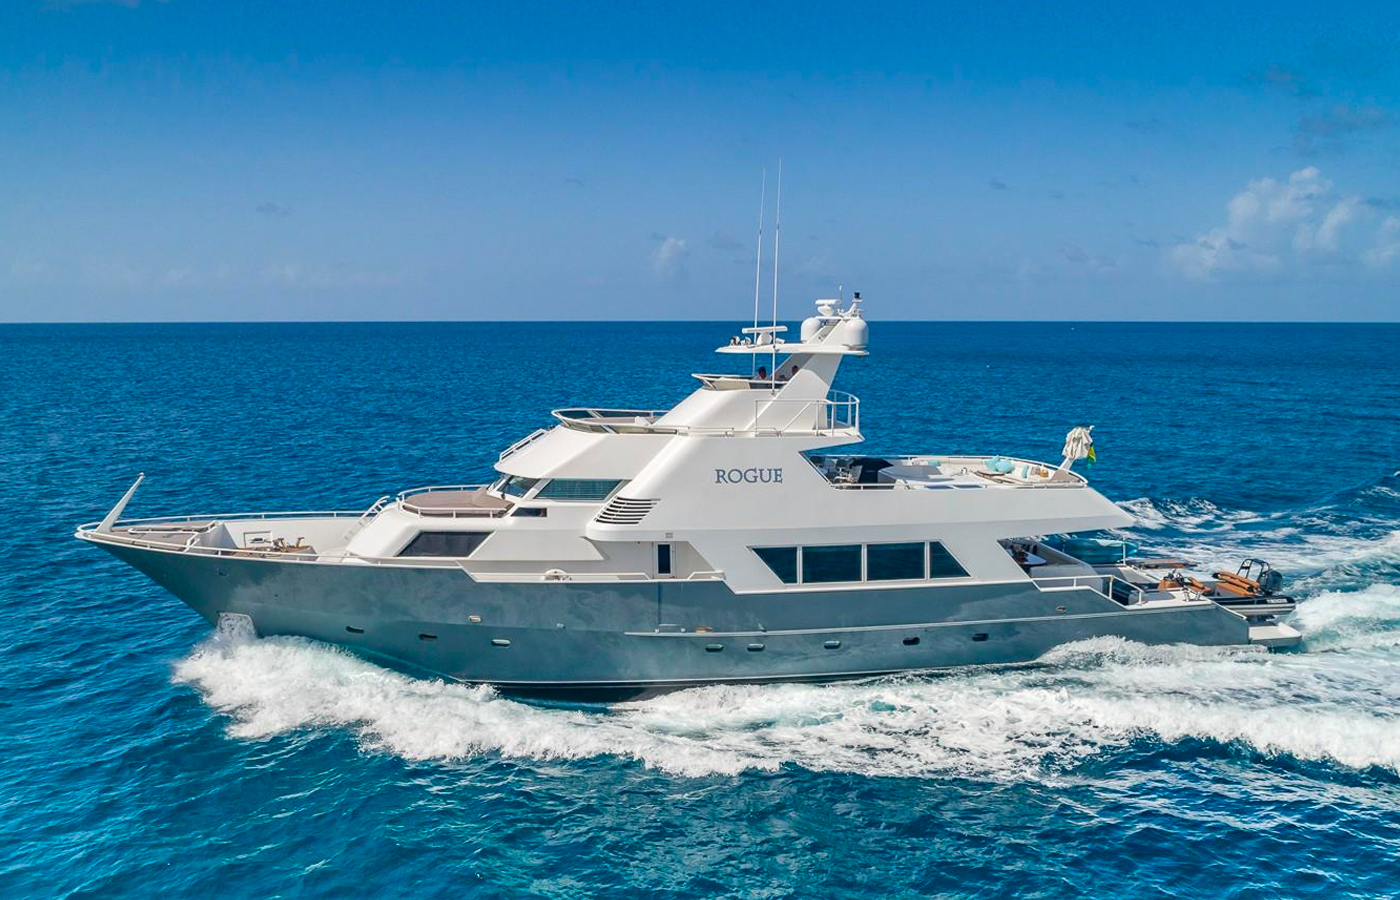 105 Poole ROGUE Sold By Yacht Broker David Johnson